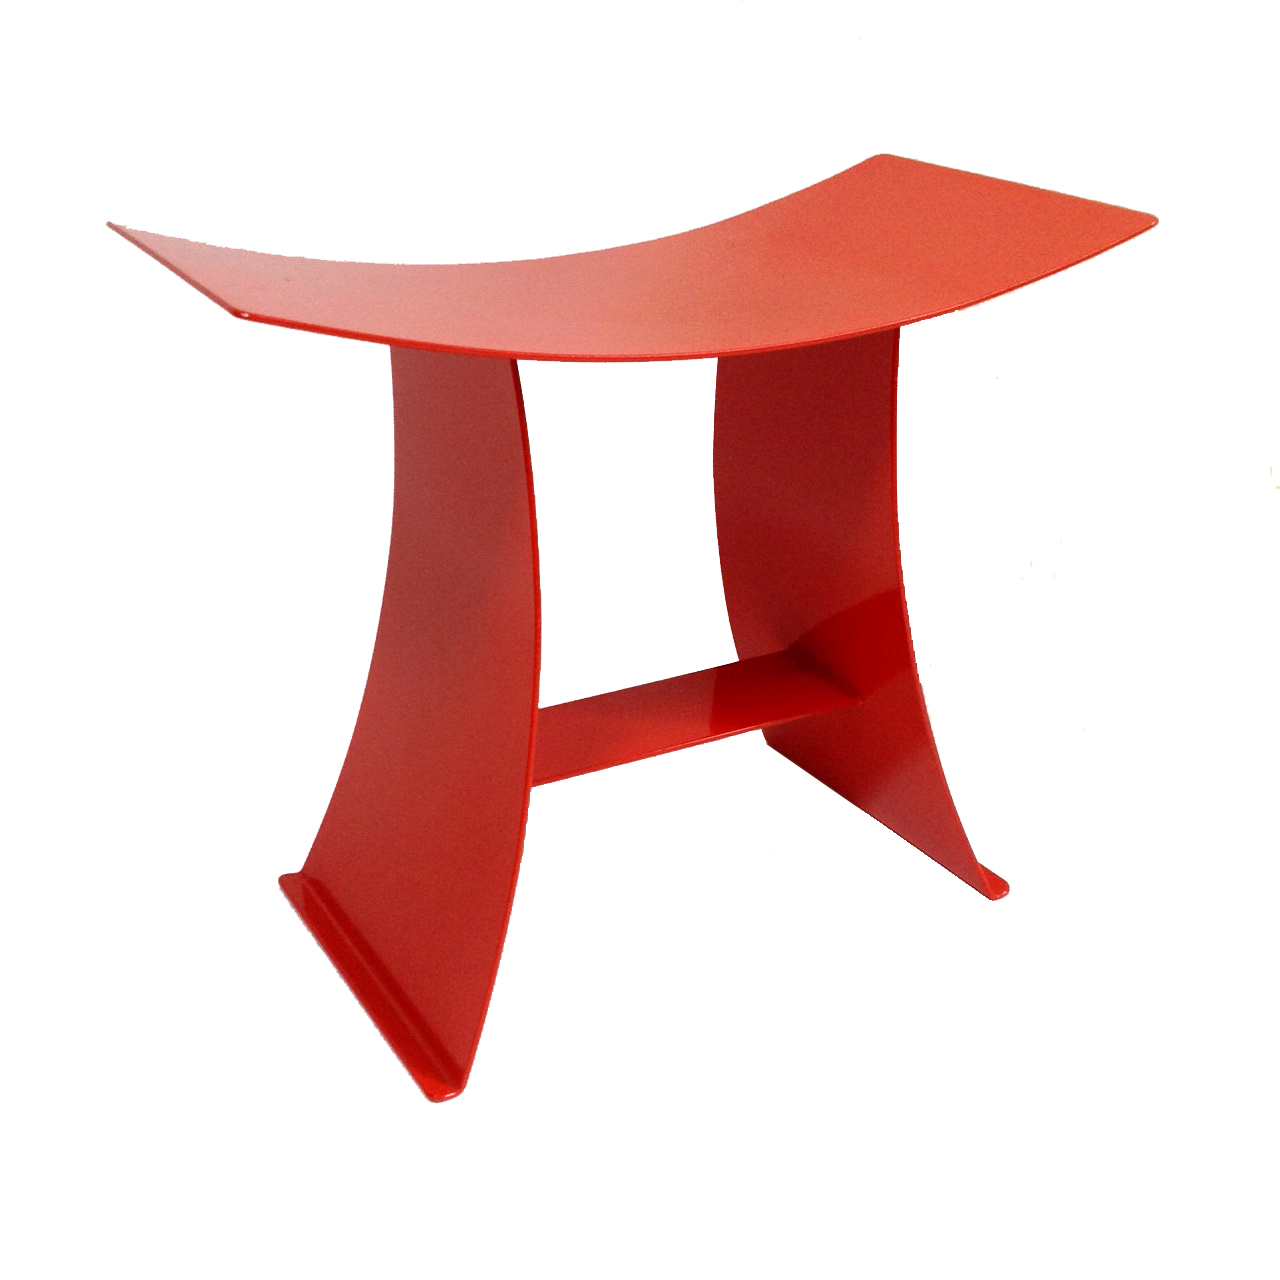 The Torii Stool